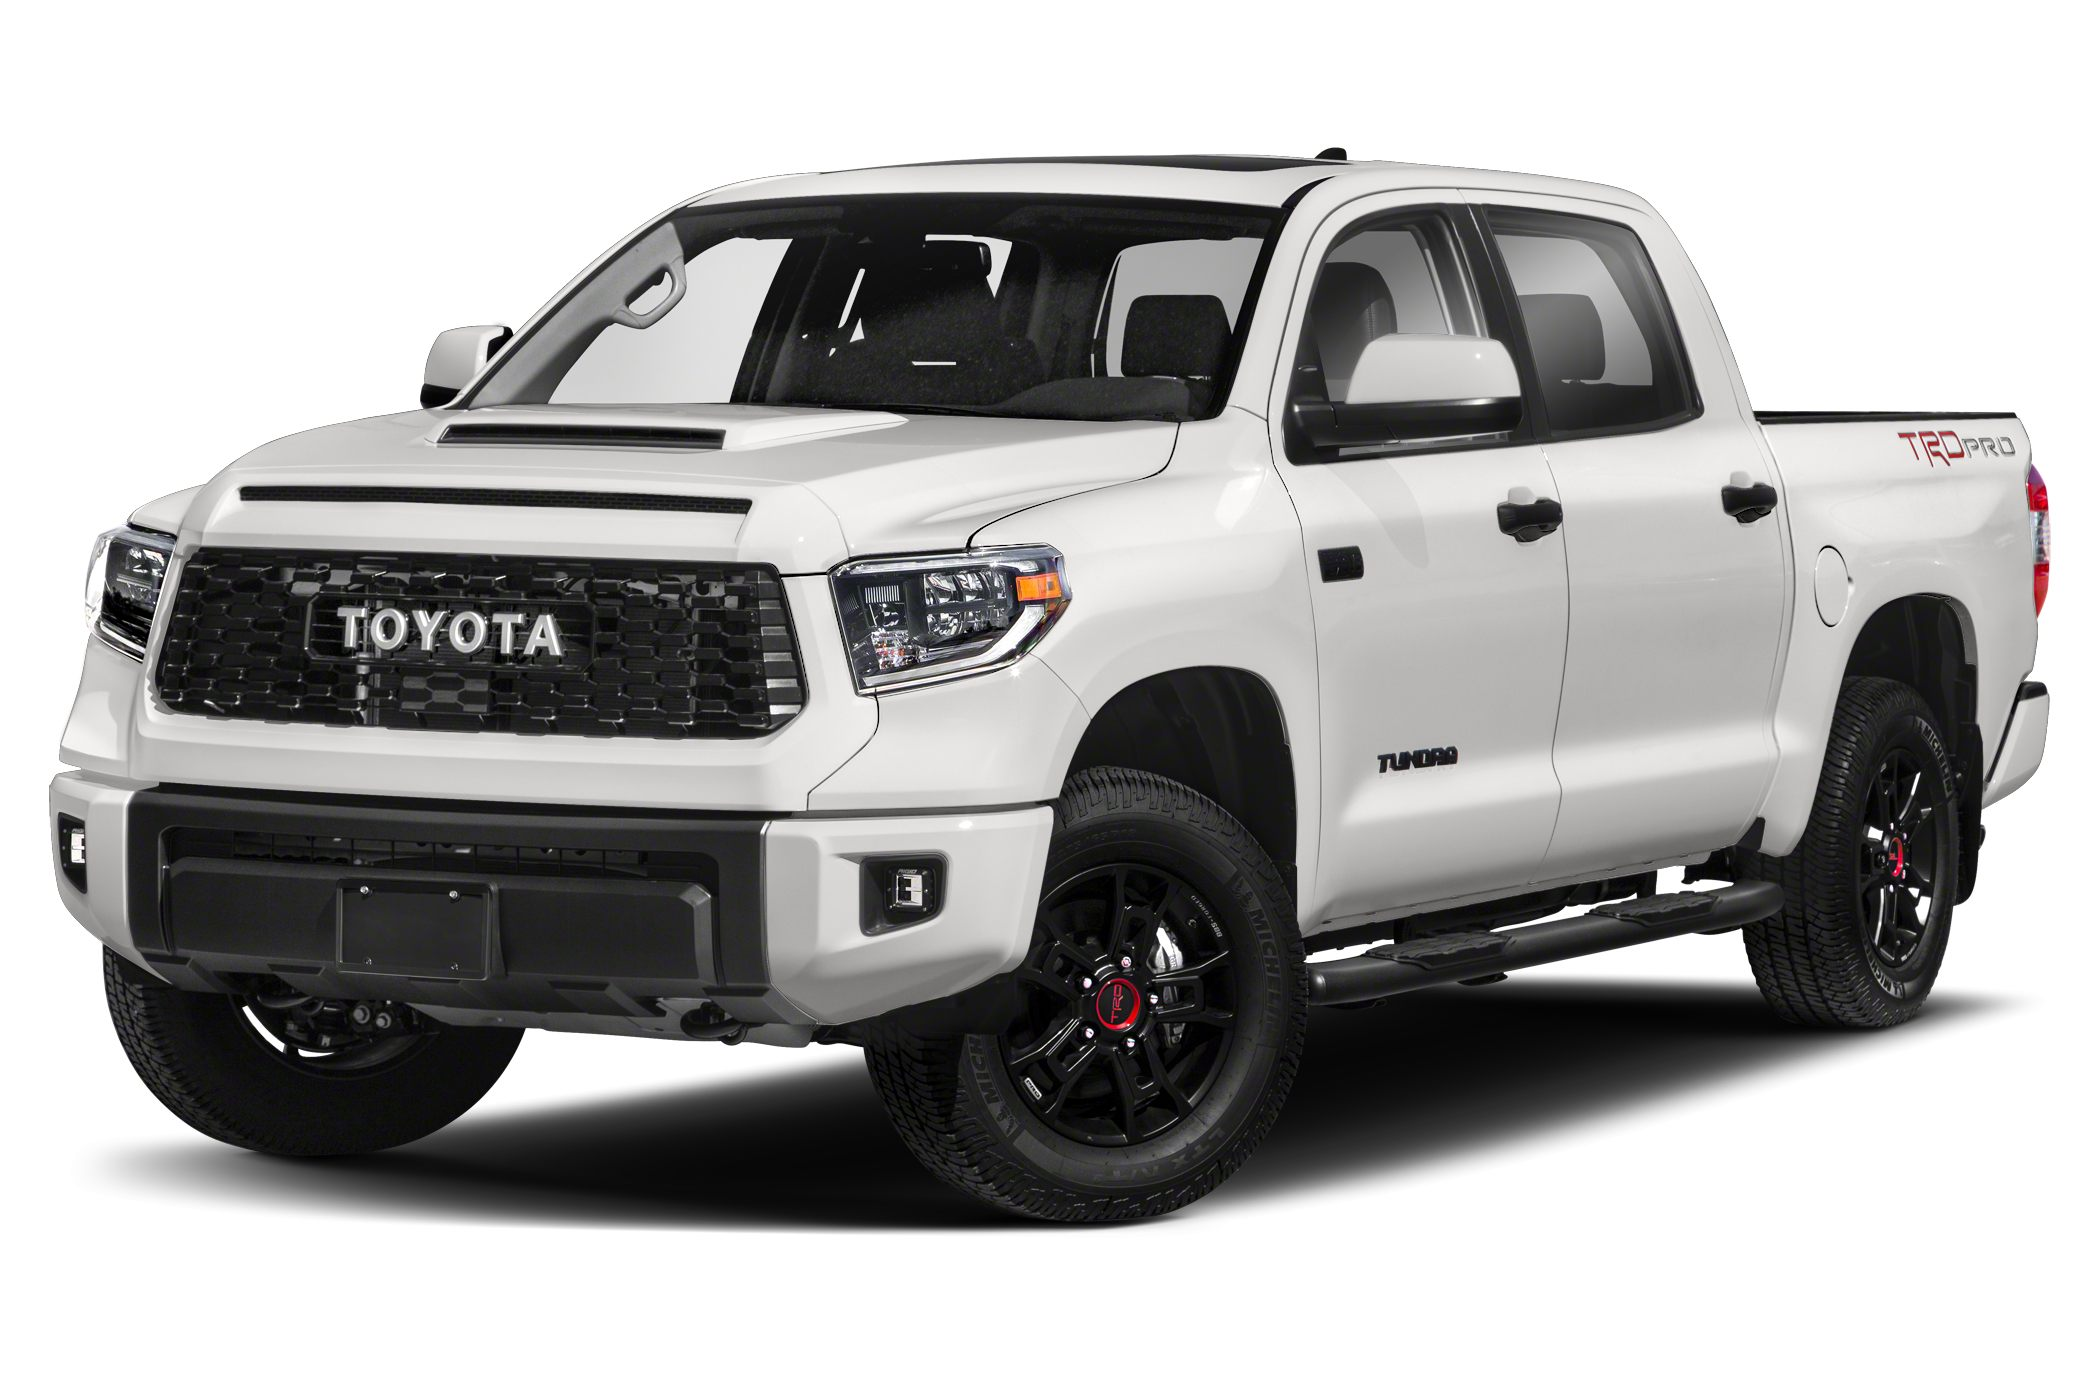 2019 Toyota Tundra Trd Pro 5 7l V8 4x4 Crewmax 5 6 Ft Box 145 7 In Wb Specs And Prices